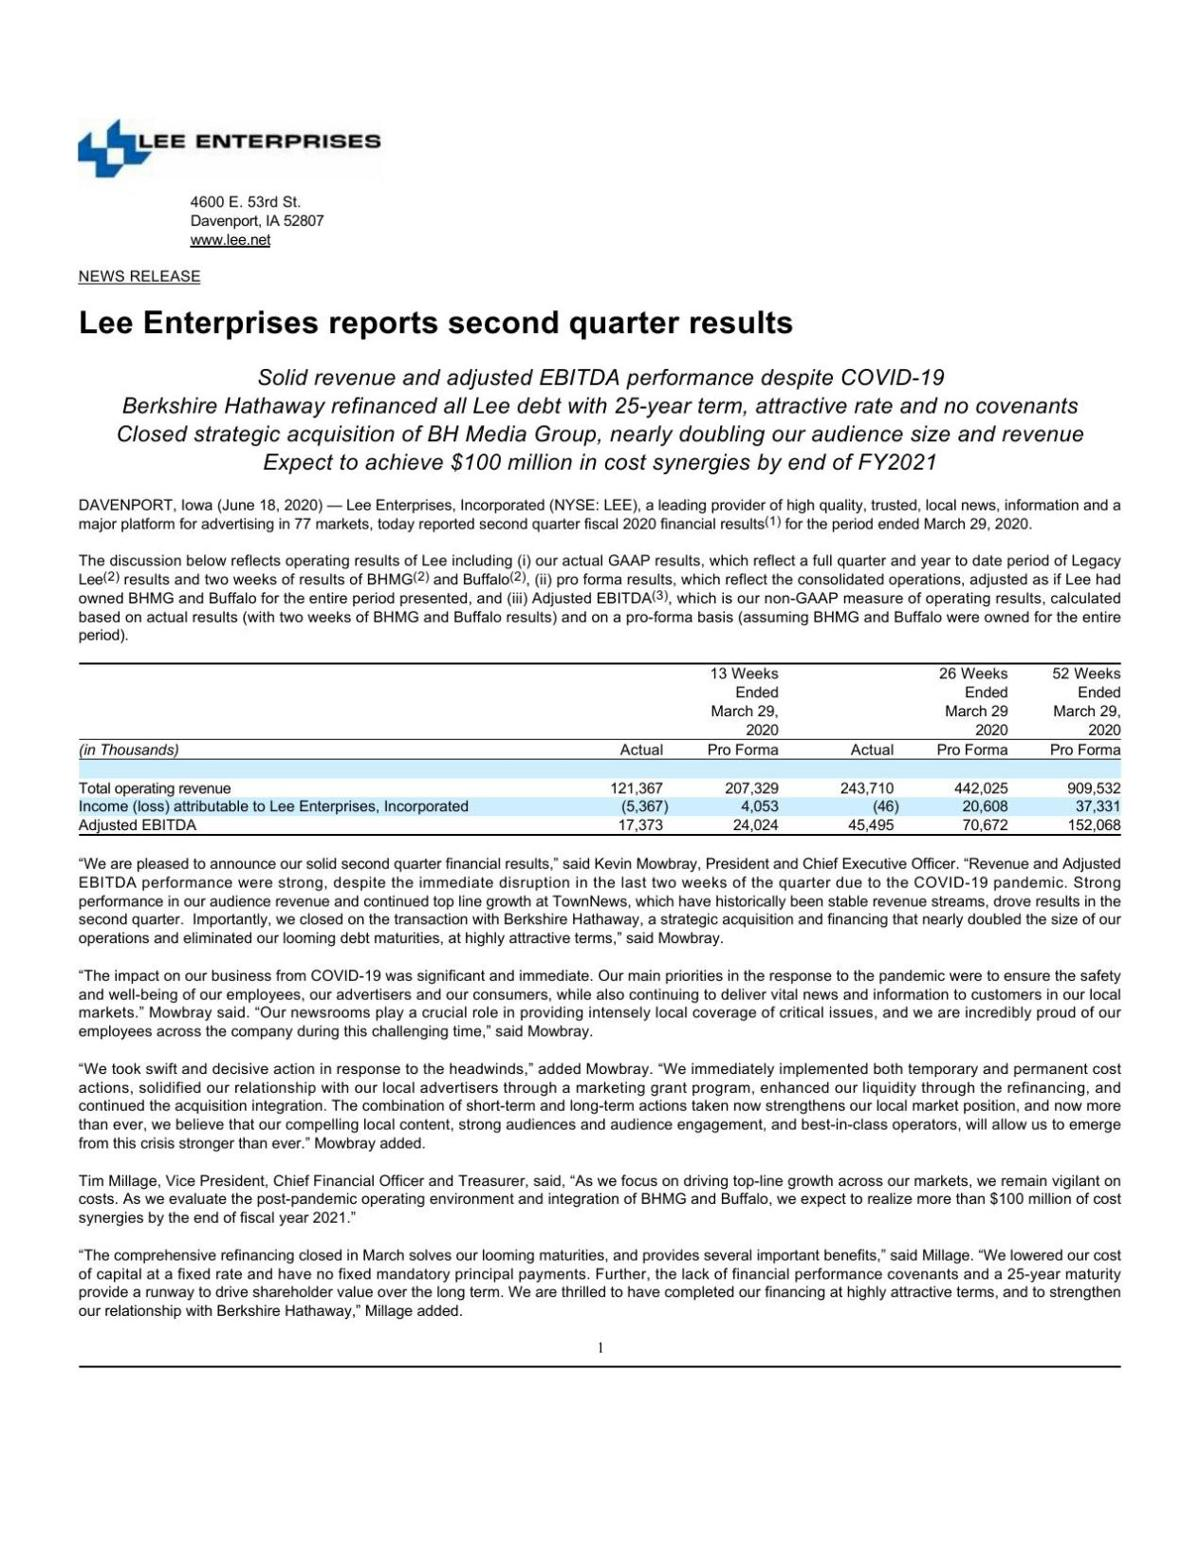 Lee Enterprises reports second quarter results